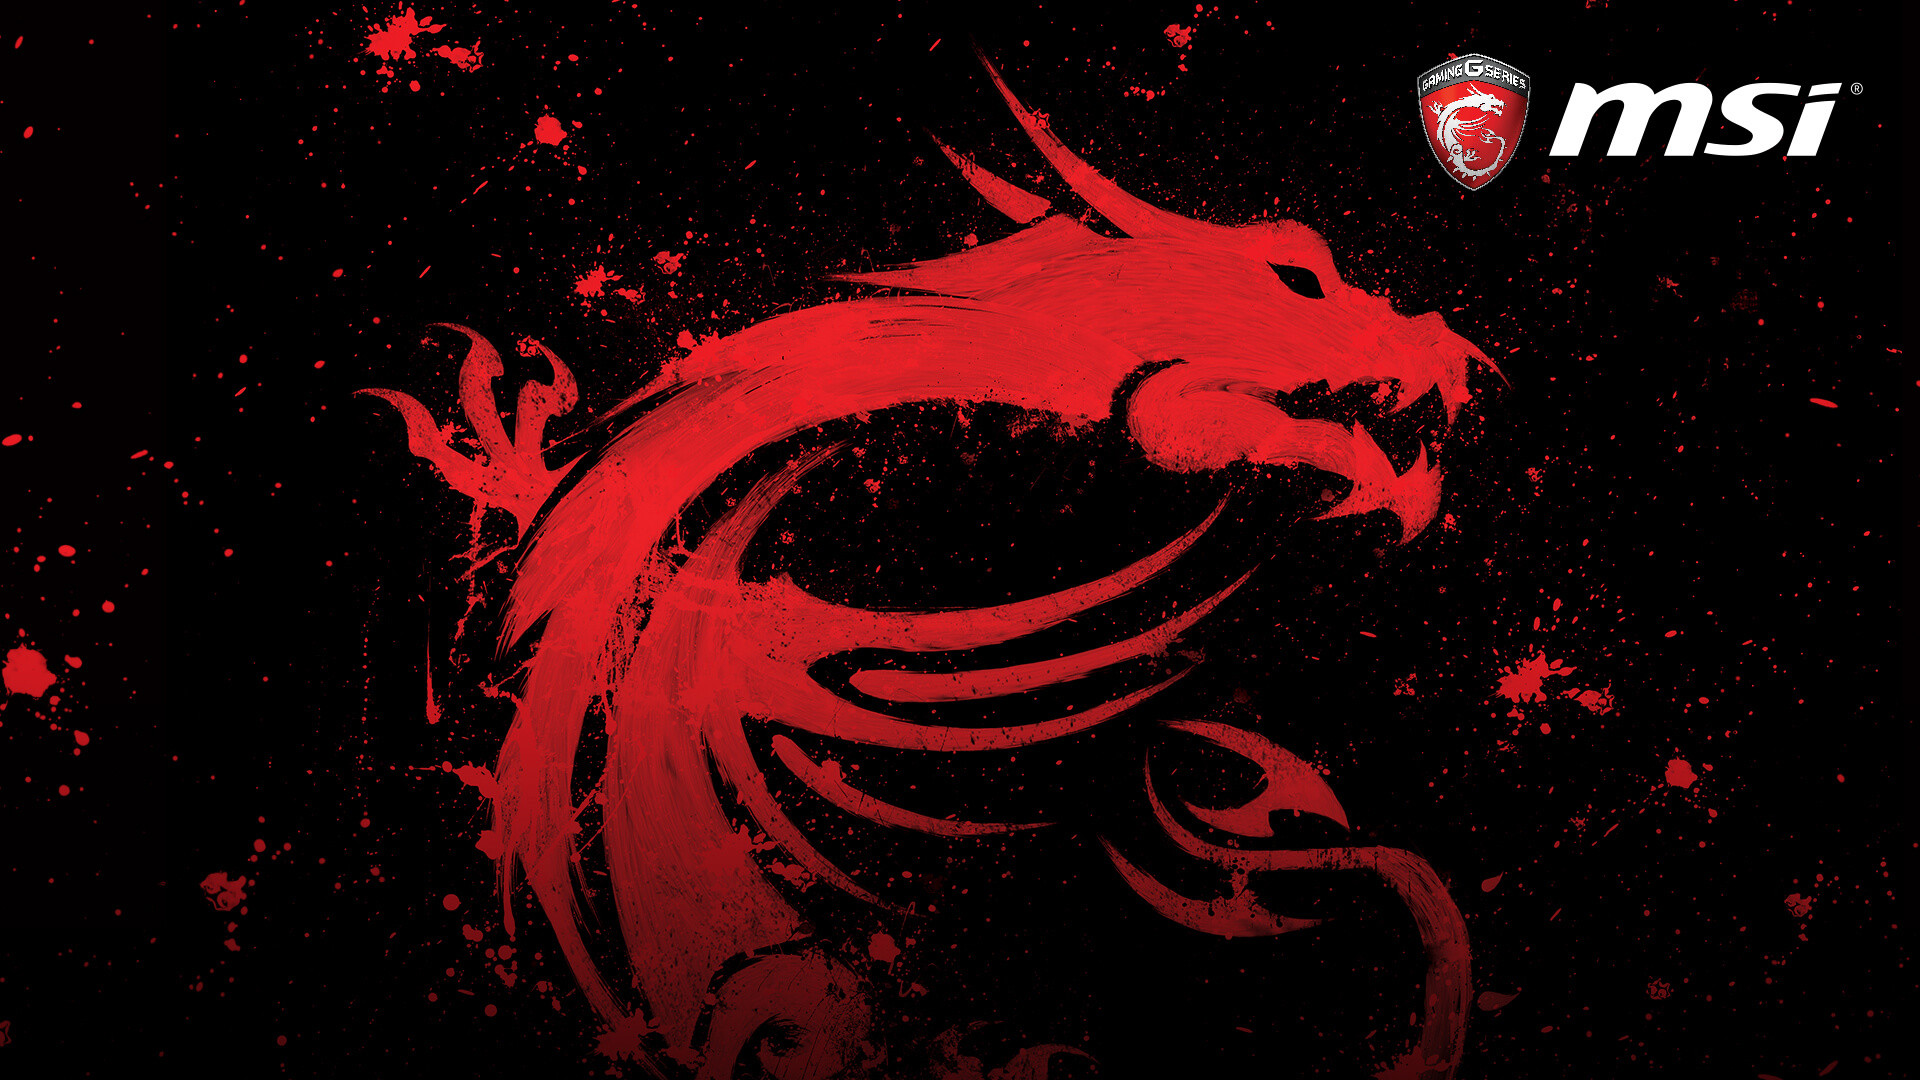 Best Anime Wallpaper Hd Msi Dragon Wallpaper 1920x1080 80 Images